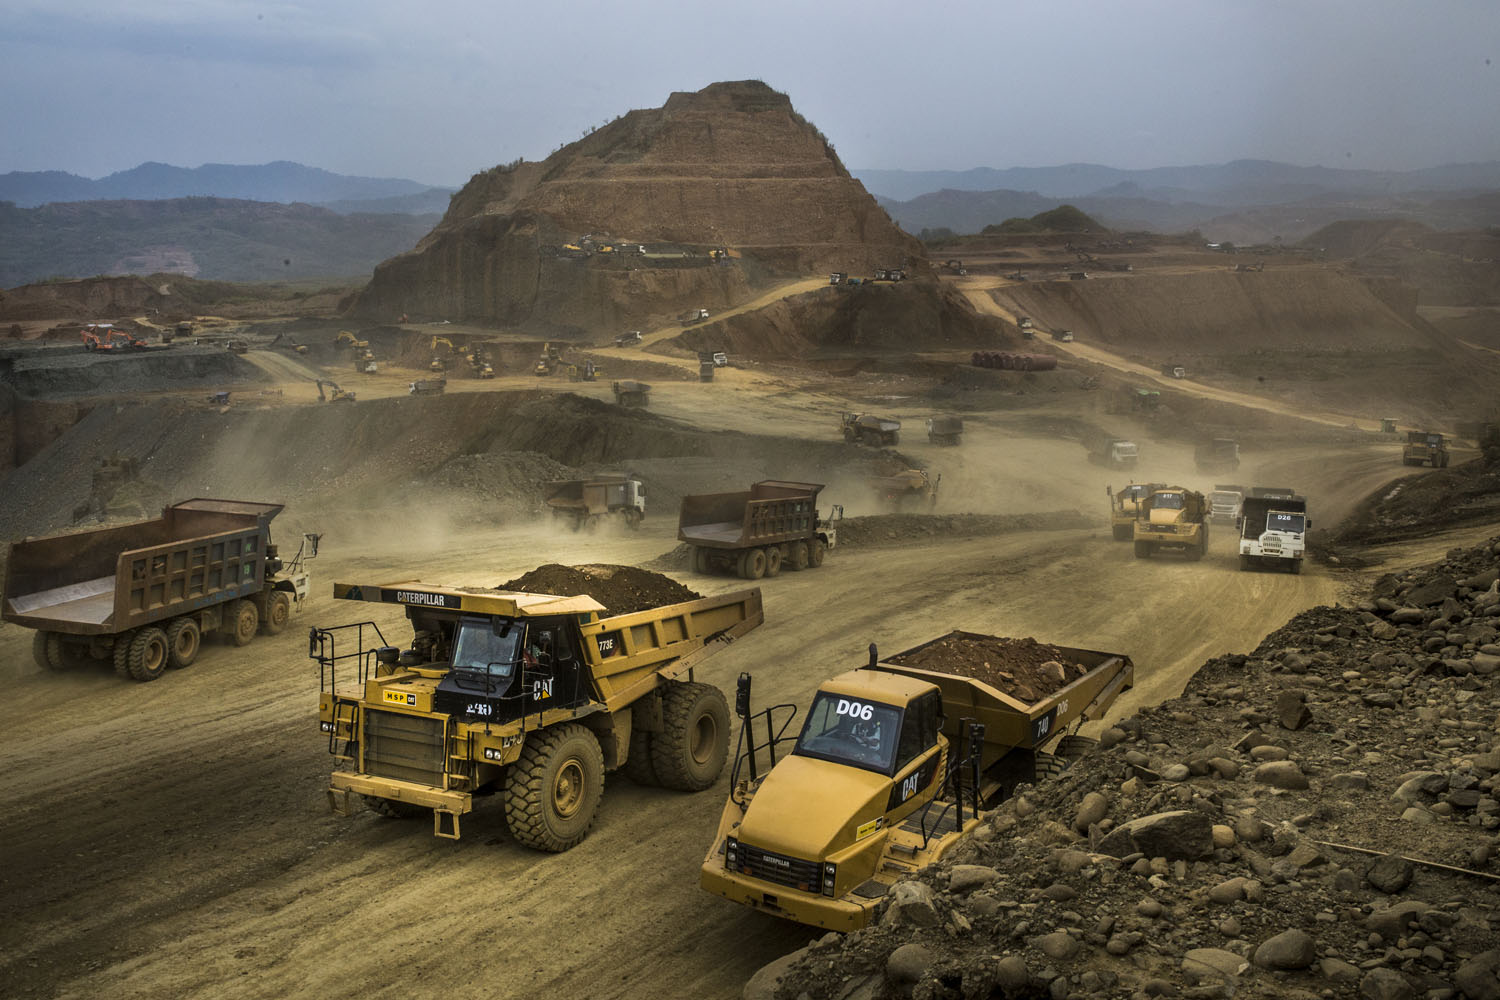 Dump trucks pass by near the Kyaing International company mining site, Sai Ja Bon, Hpakant, April 2015. Kyaing International company is widely known to be owned by the family of former military dictator Than Shwe